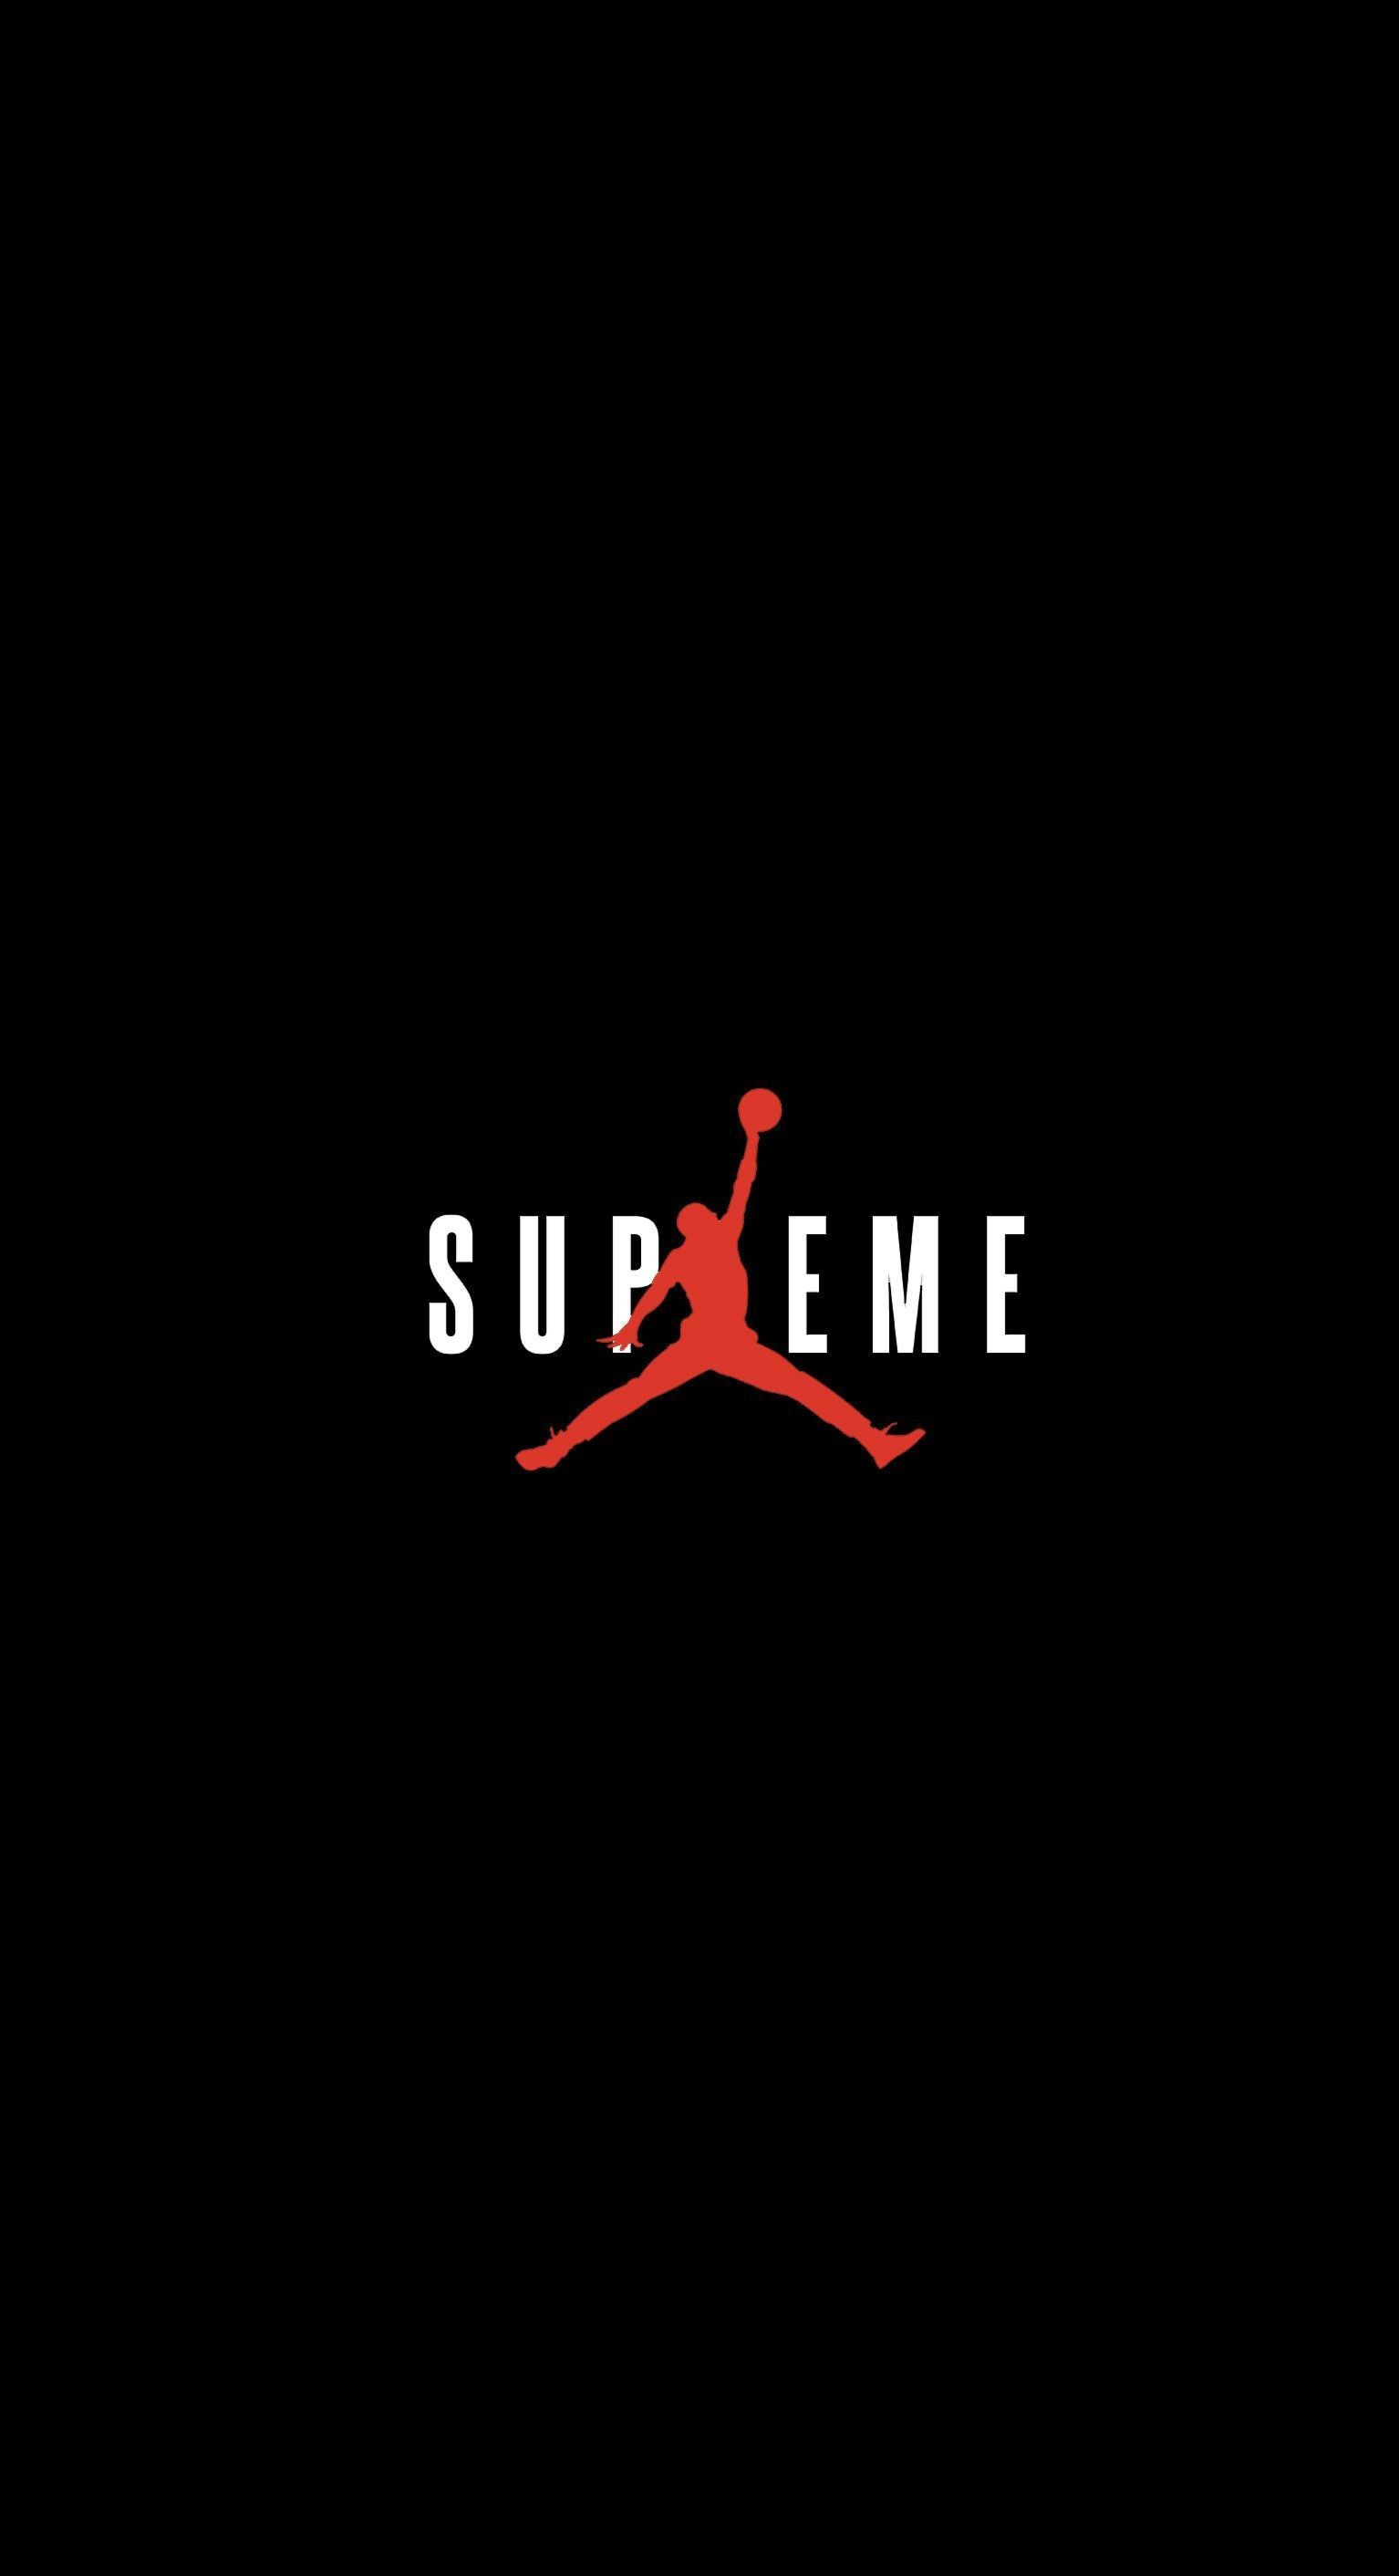 Gucci X Supreme Wallpapers Top Free Gucci X Supreme Backgrounds